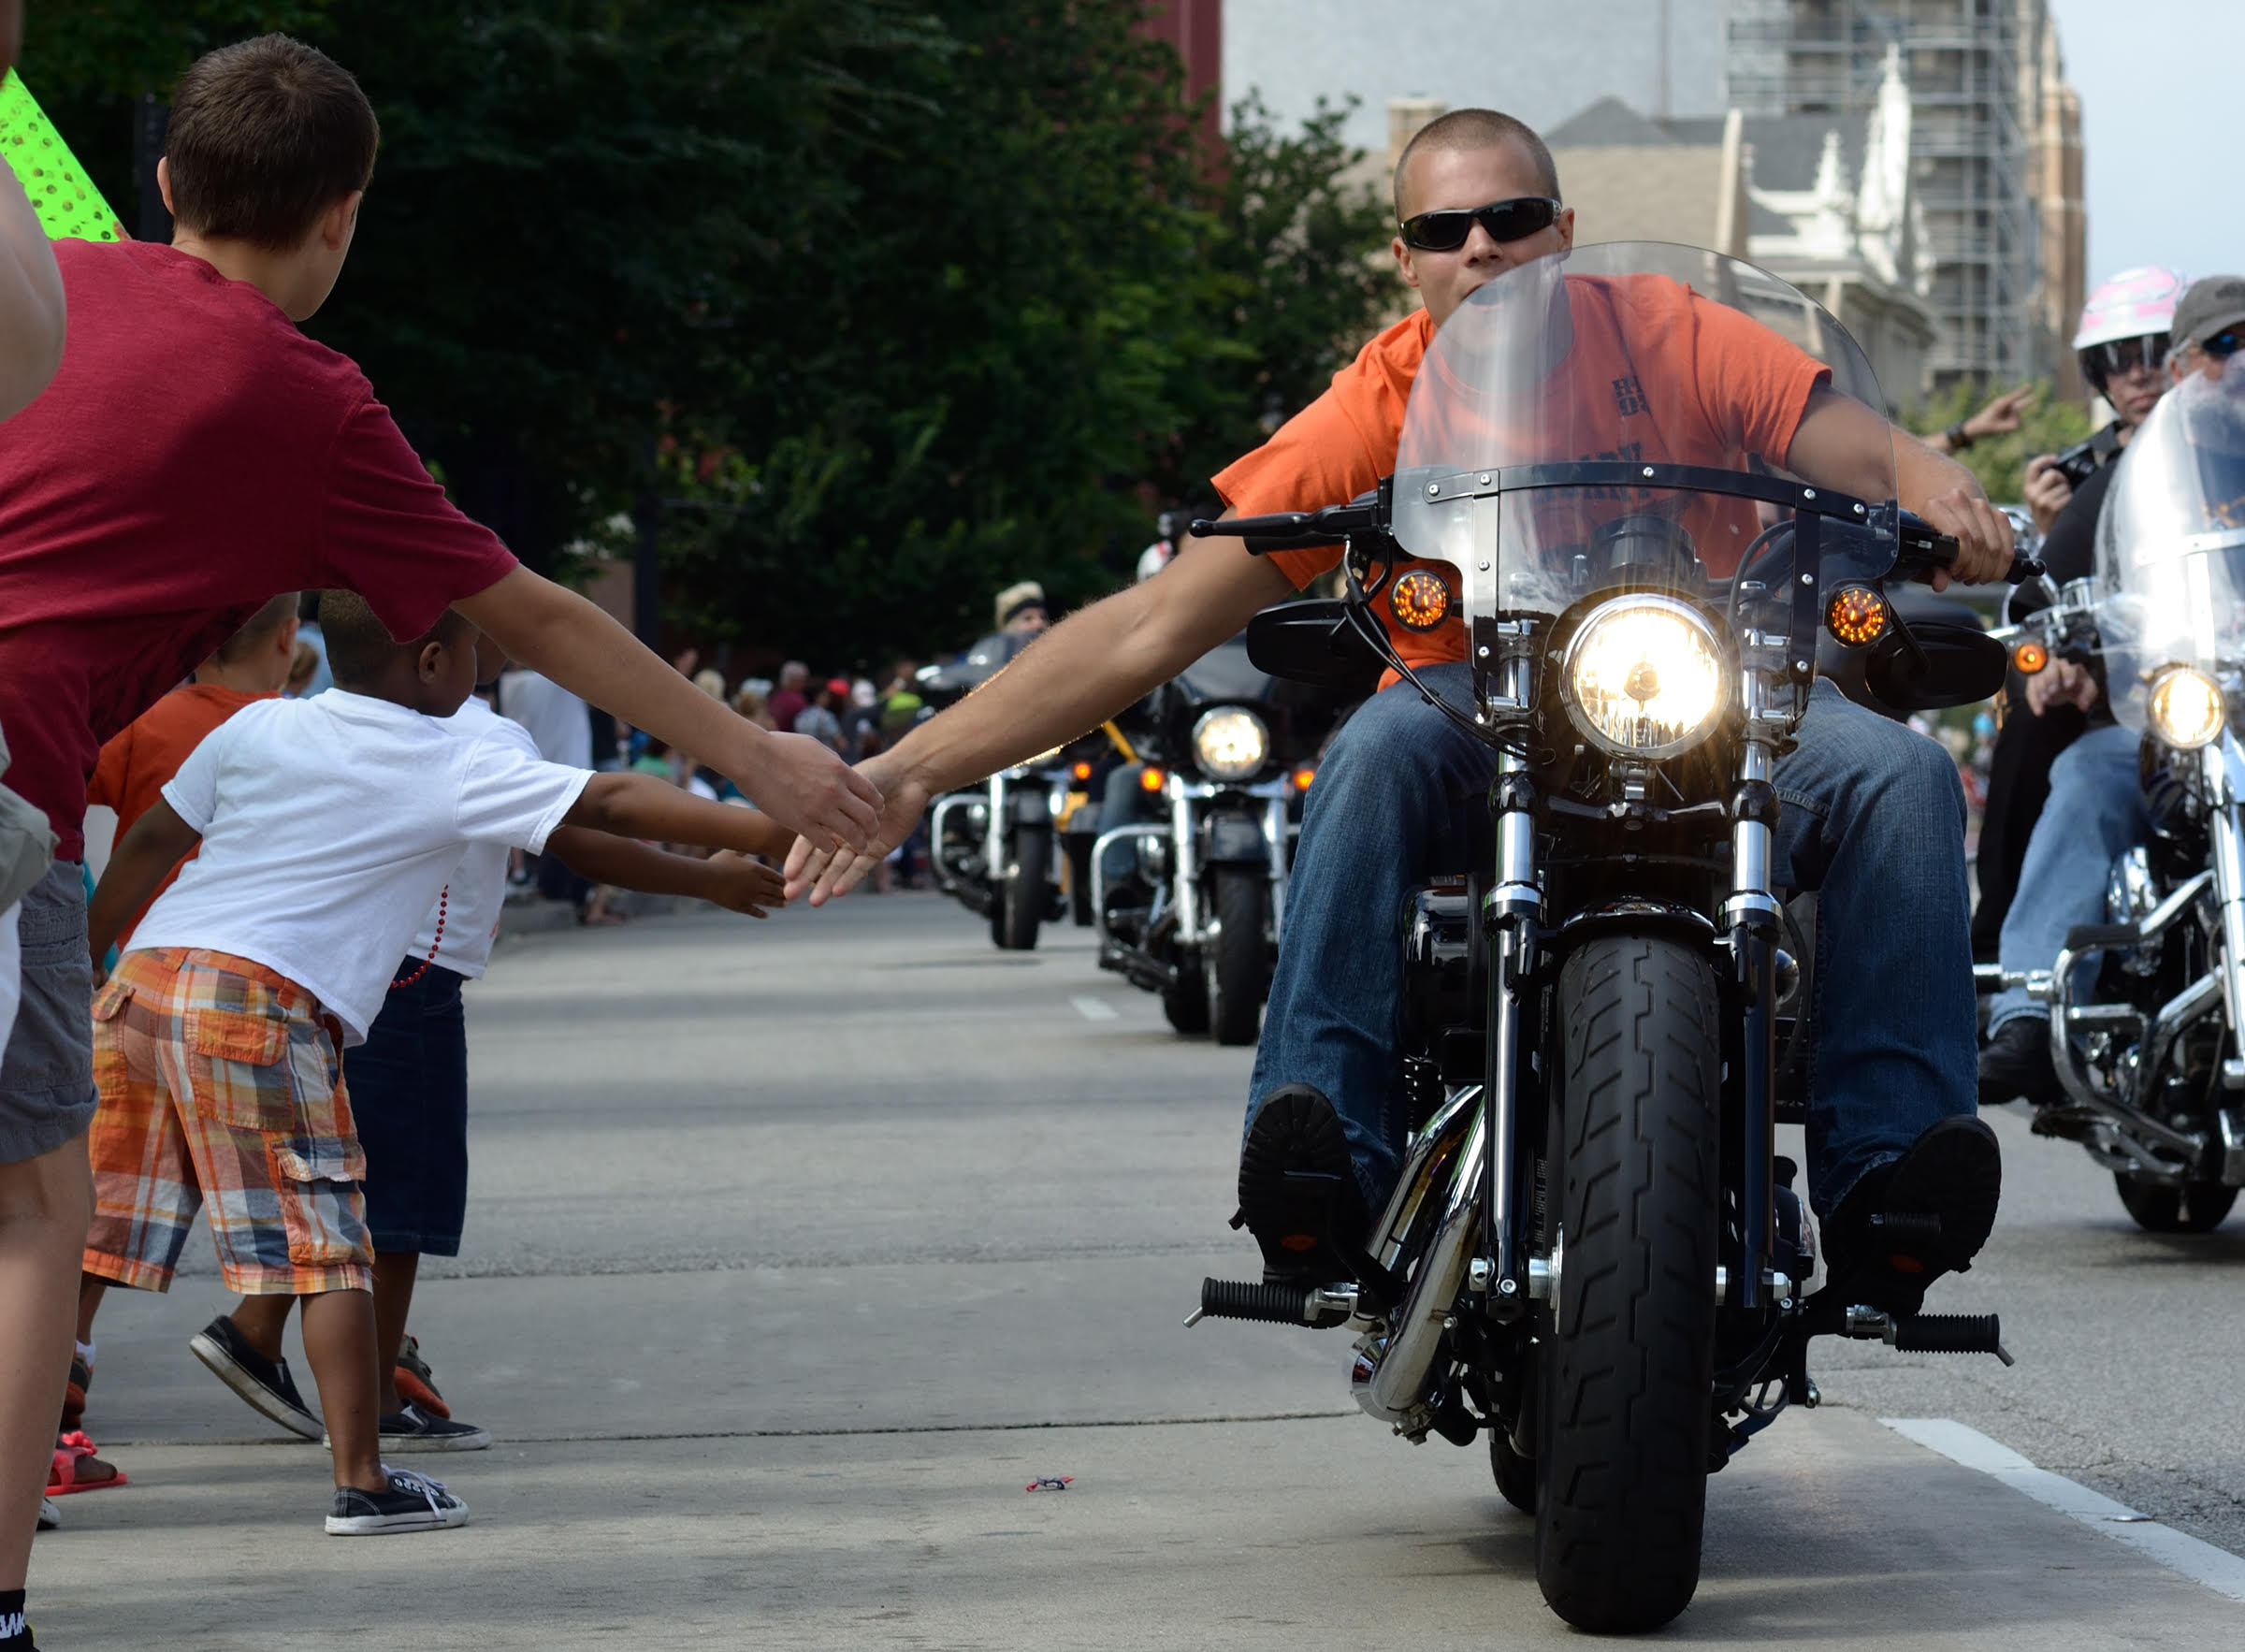 High Fives at the 110th Harley-Davidson parade on Wisconsin Road.